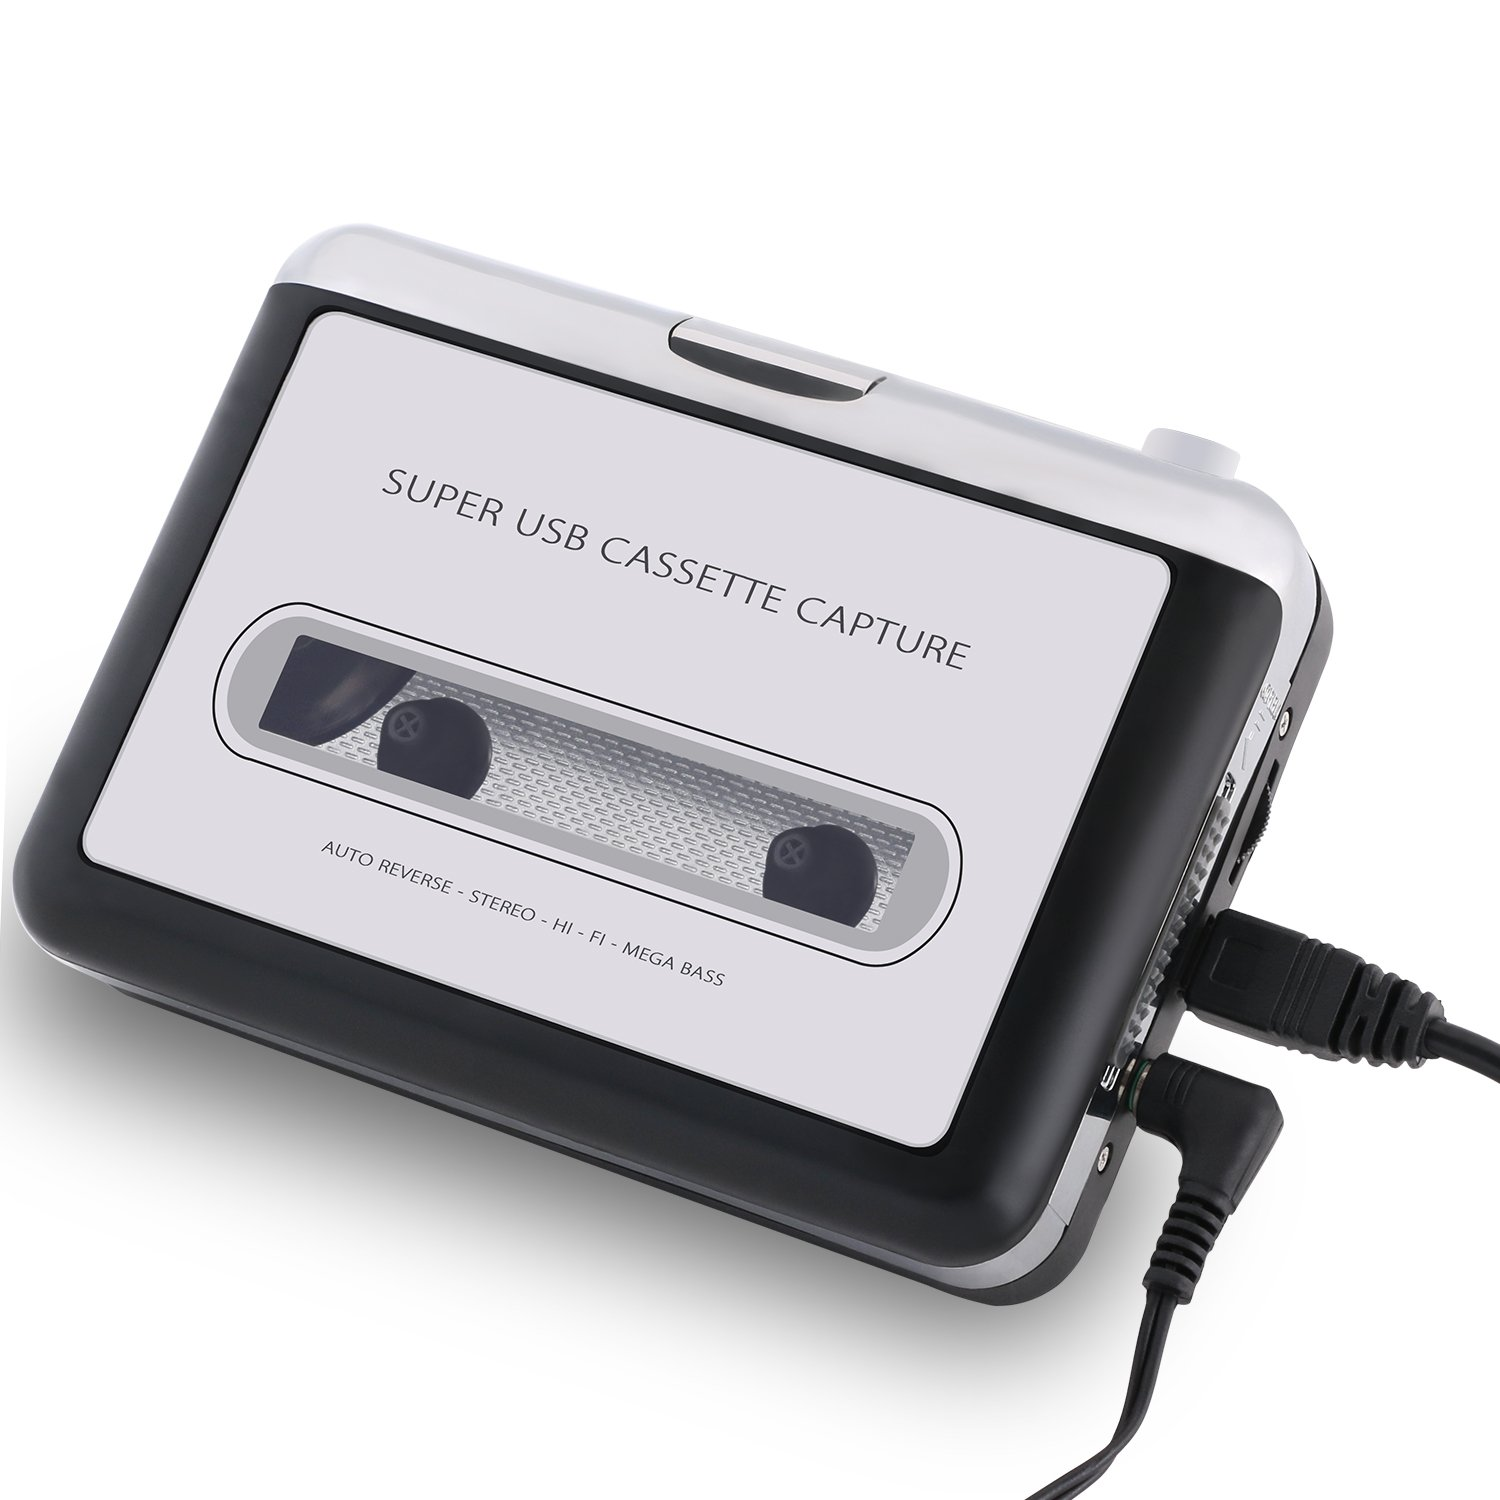 Incutex Kassette zu MP3 Konvertierer und Player mit PC, tragbarer USB Kassettenspieler to MP3 converter